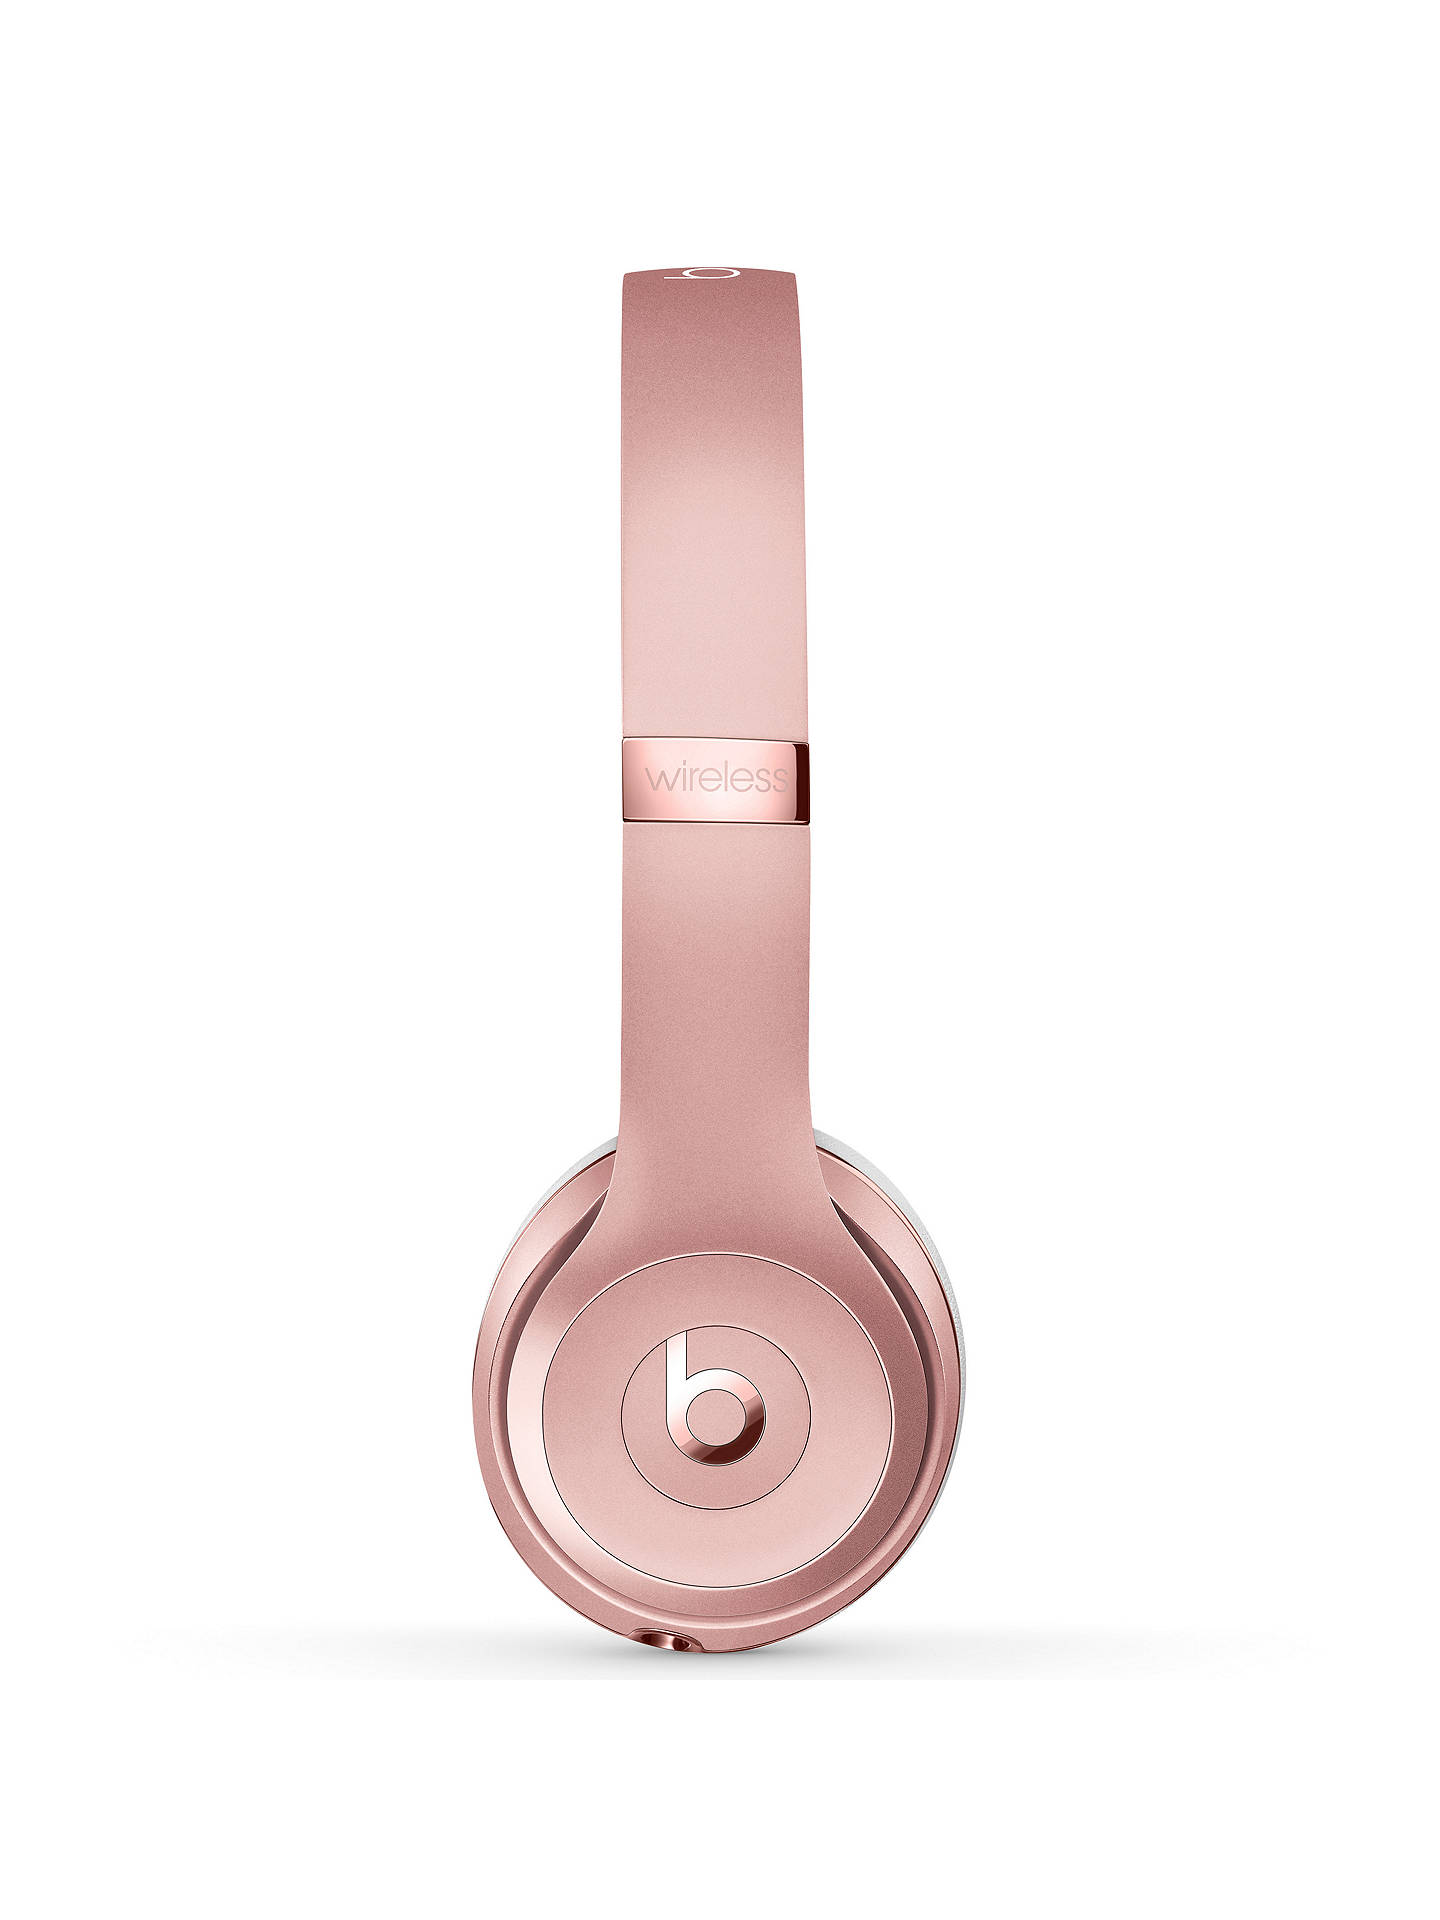 BuyBeats Solo³ Wireless Bluetooth On-Ear Headphones with Mic/Remote, Rose Gold Online at johnlewis.com